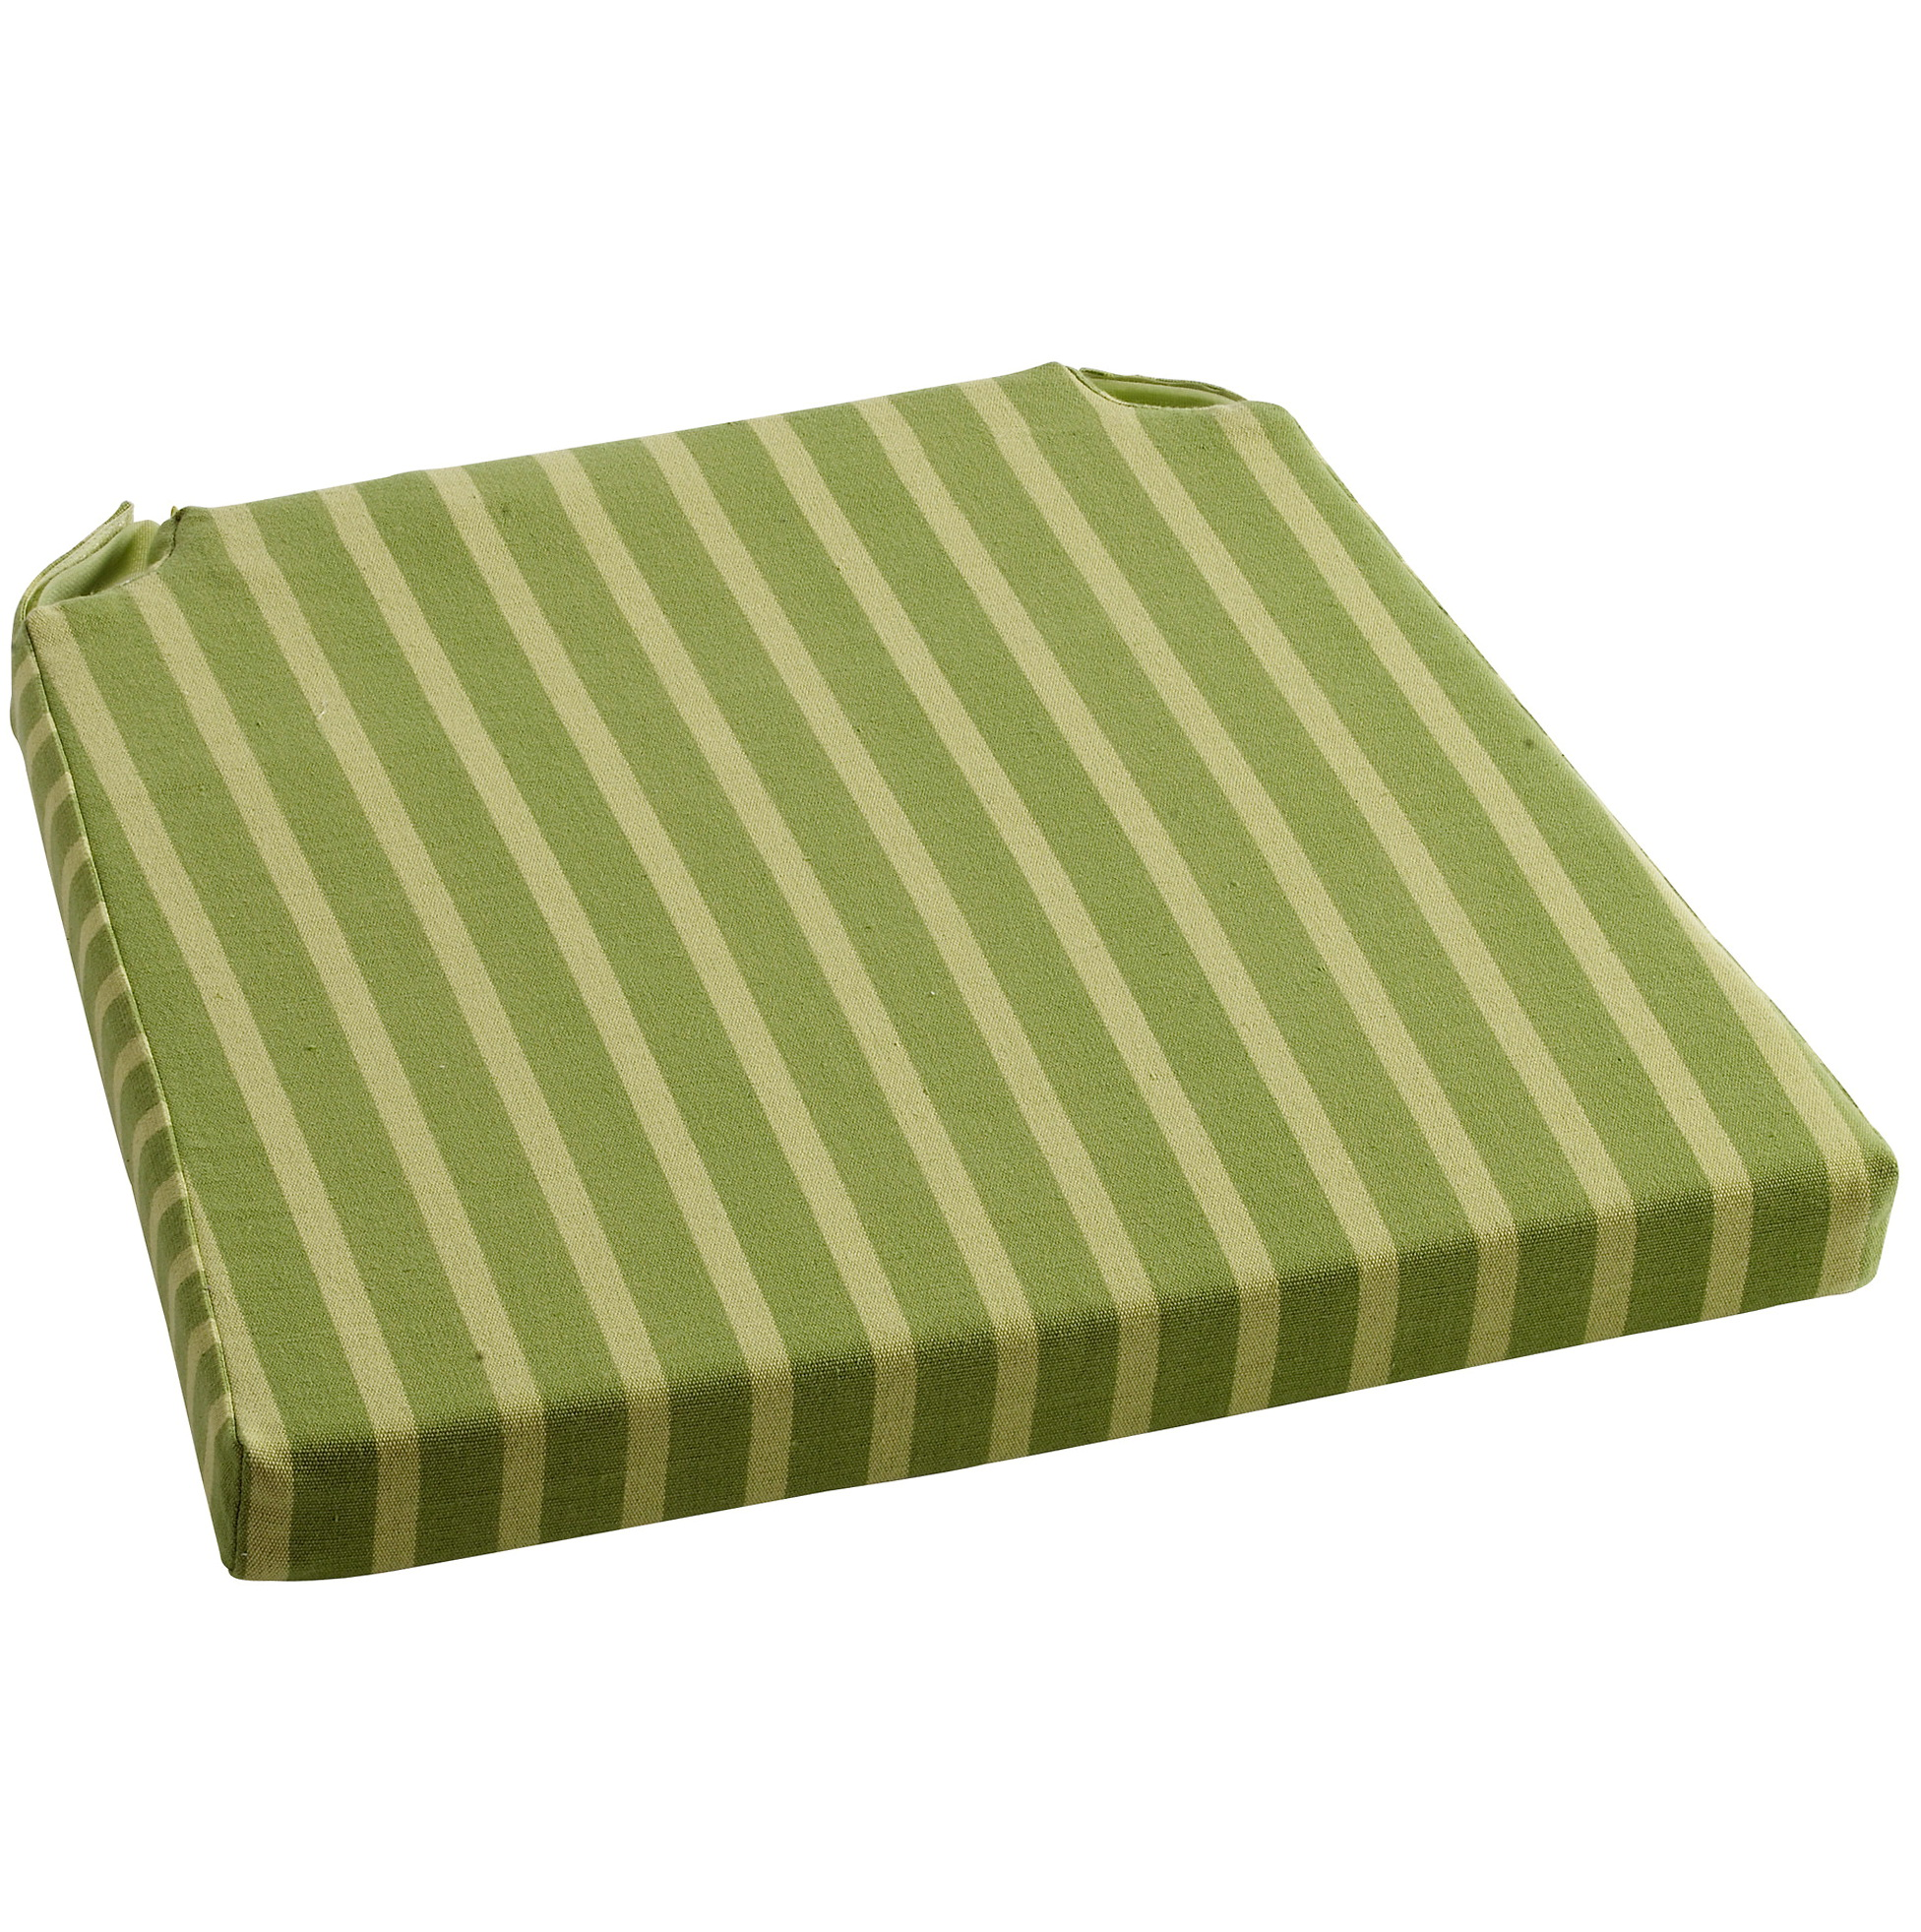 ikea chair cushions party covers buy pads home design ideas